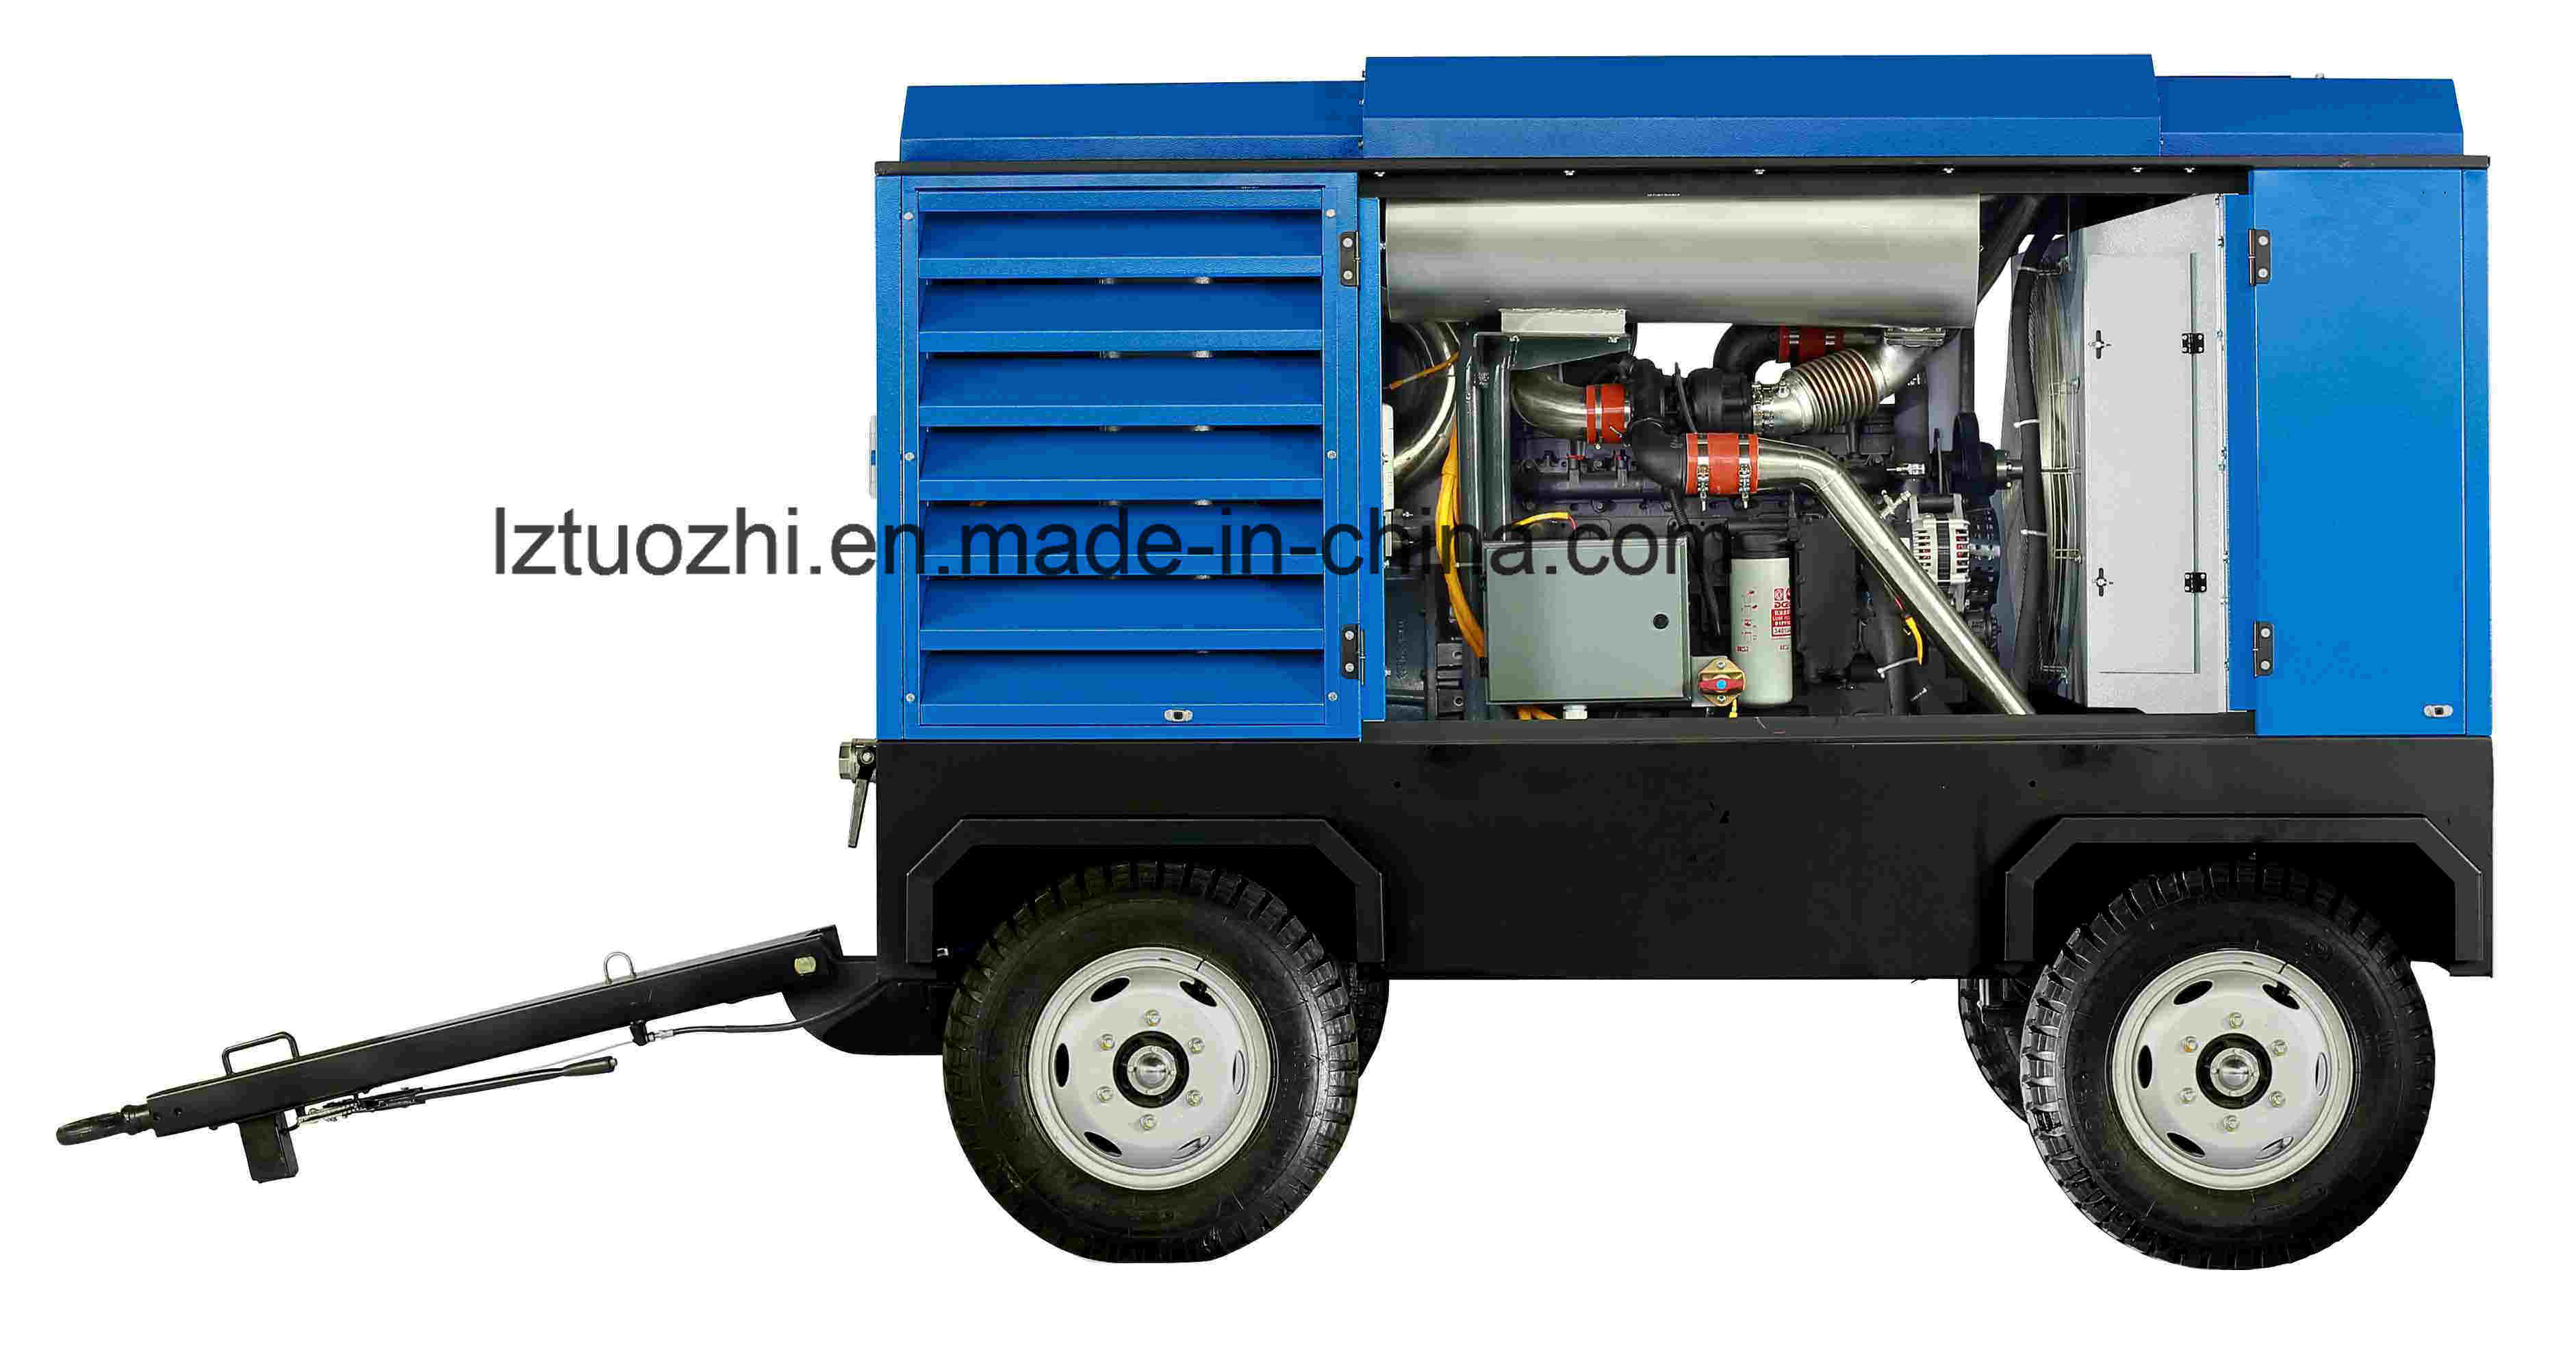 Atlas Copco-Liutech 748cfm 10bar Rotary Portable Diesel Air Compressor